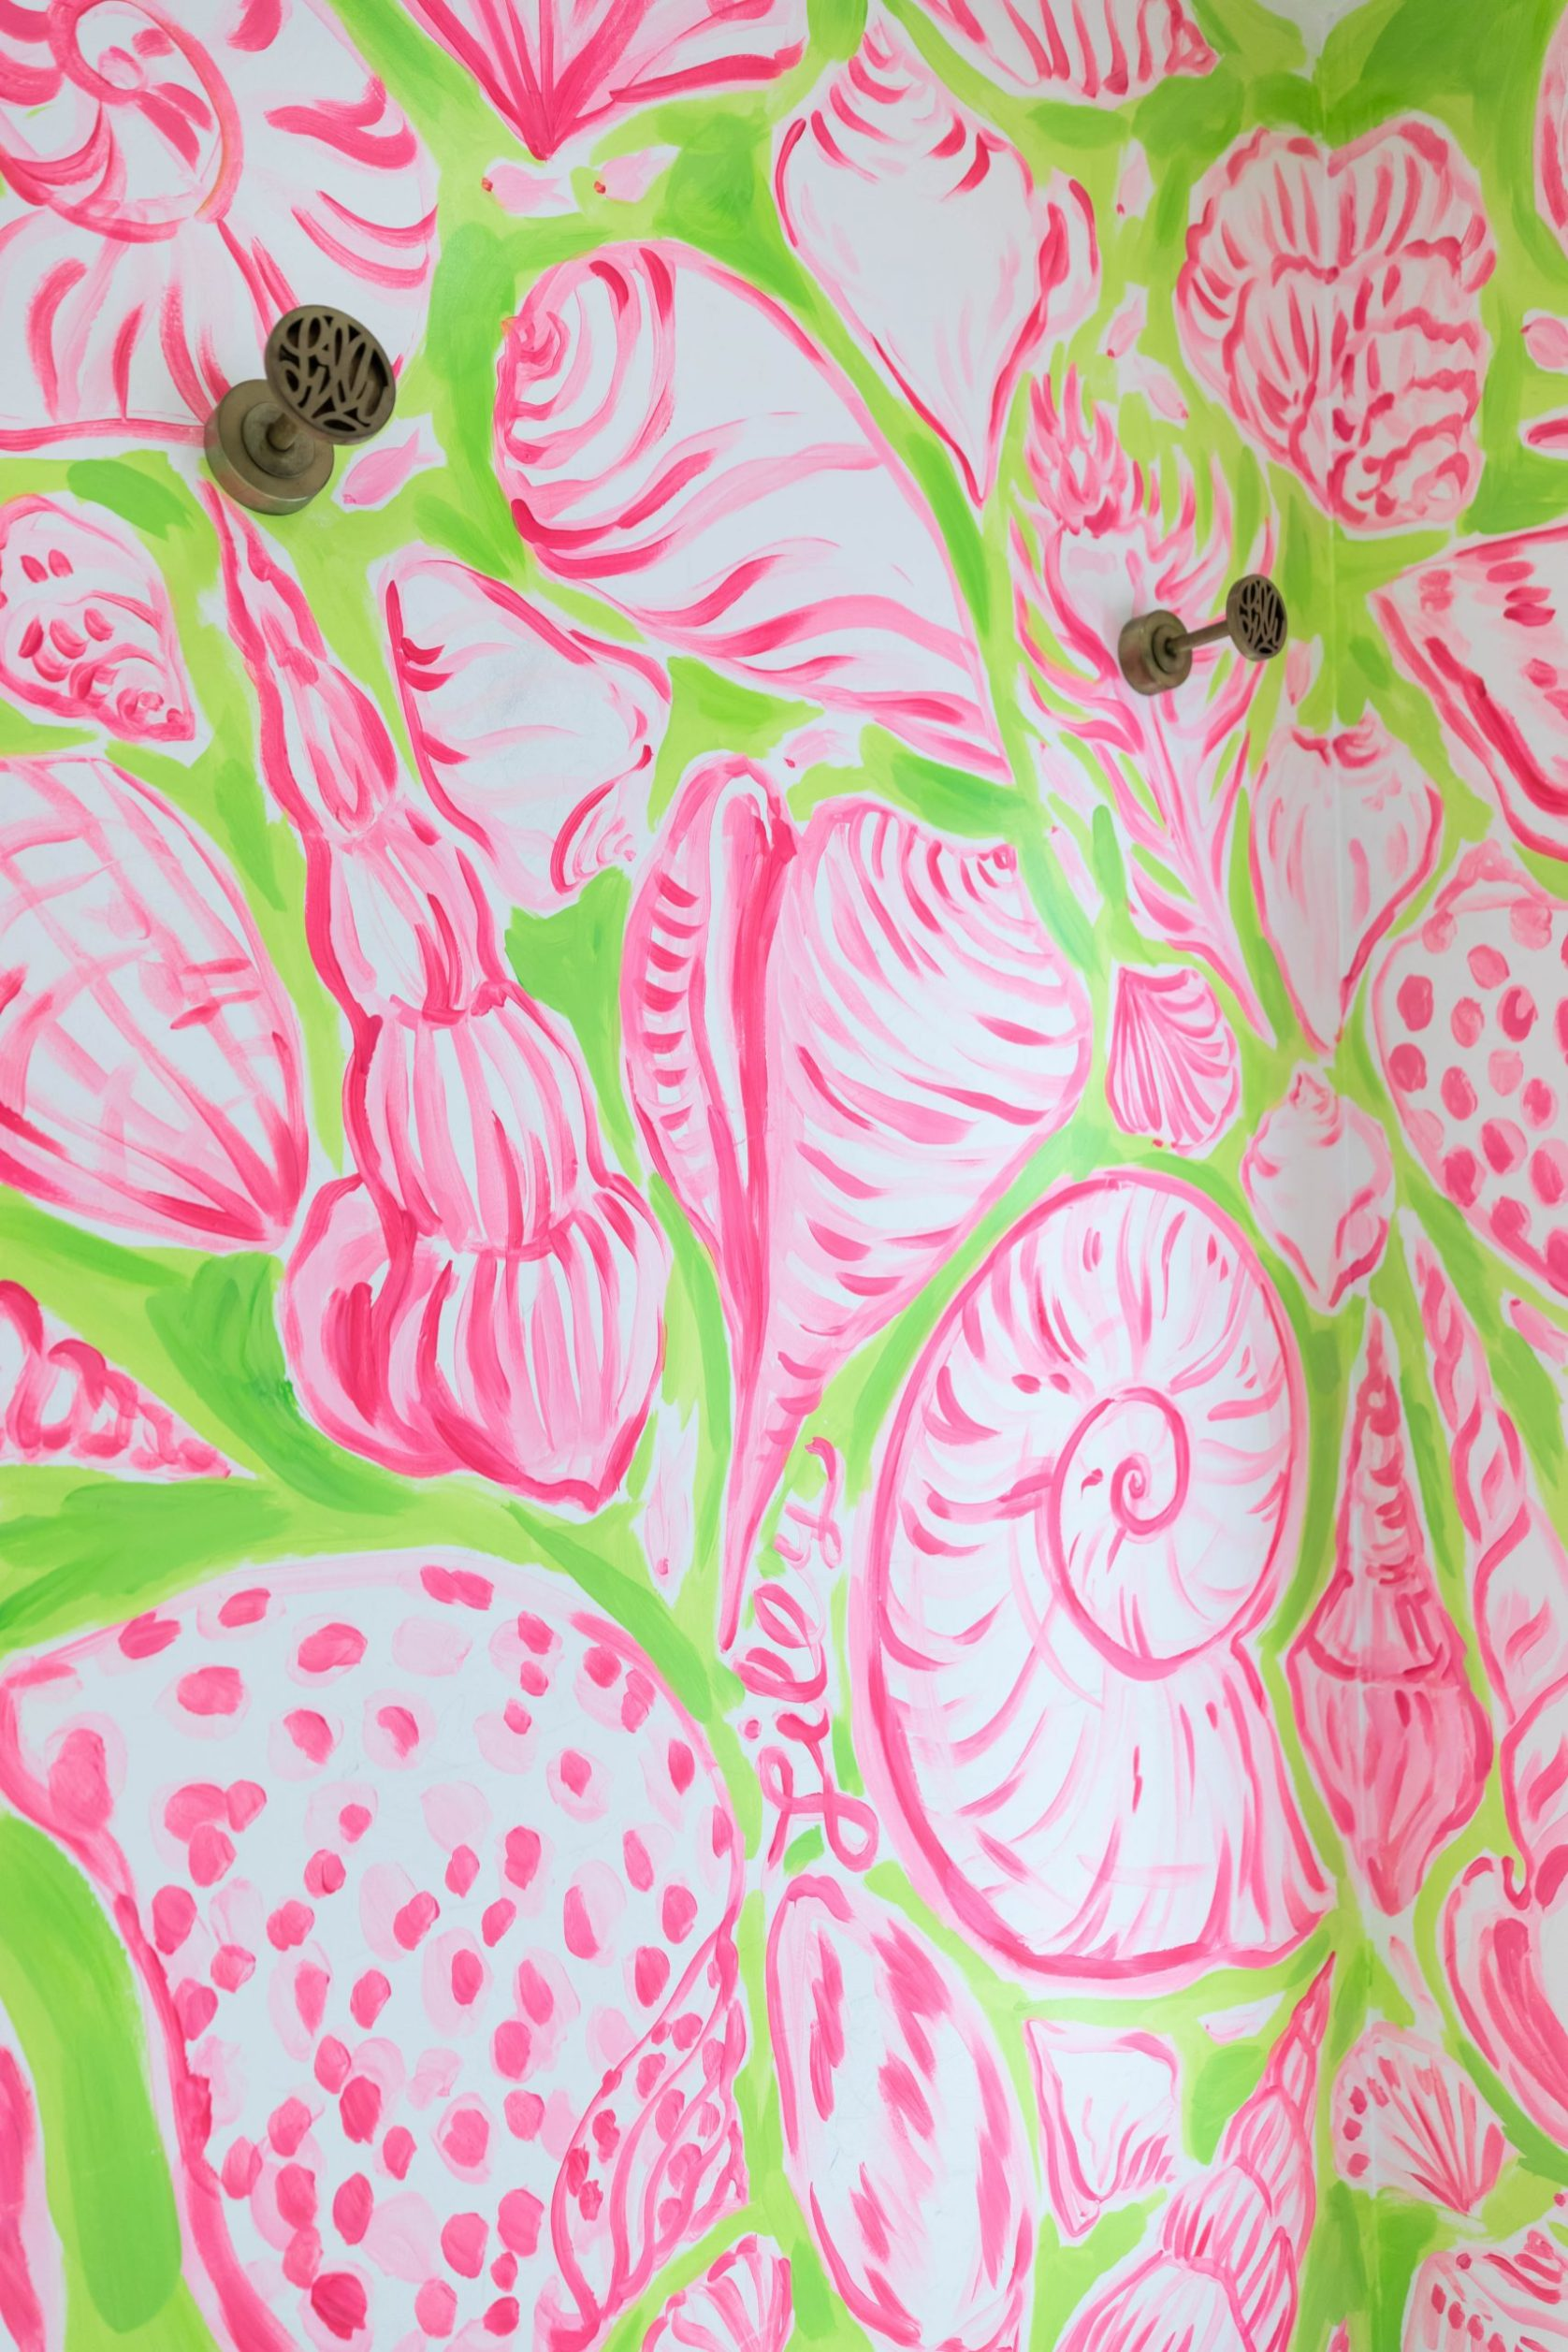 Pink and Green Seashell Print Disney Springs Orlando Florida Lilly Pulitzer Store Handpainted Dressing Room Photographed by Annie Fairfax